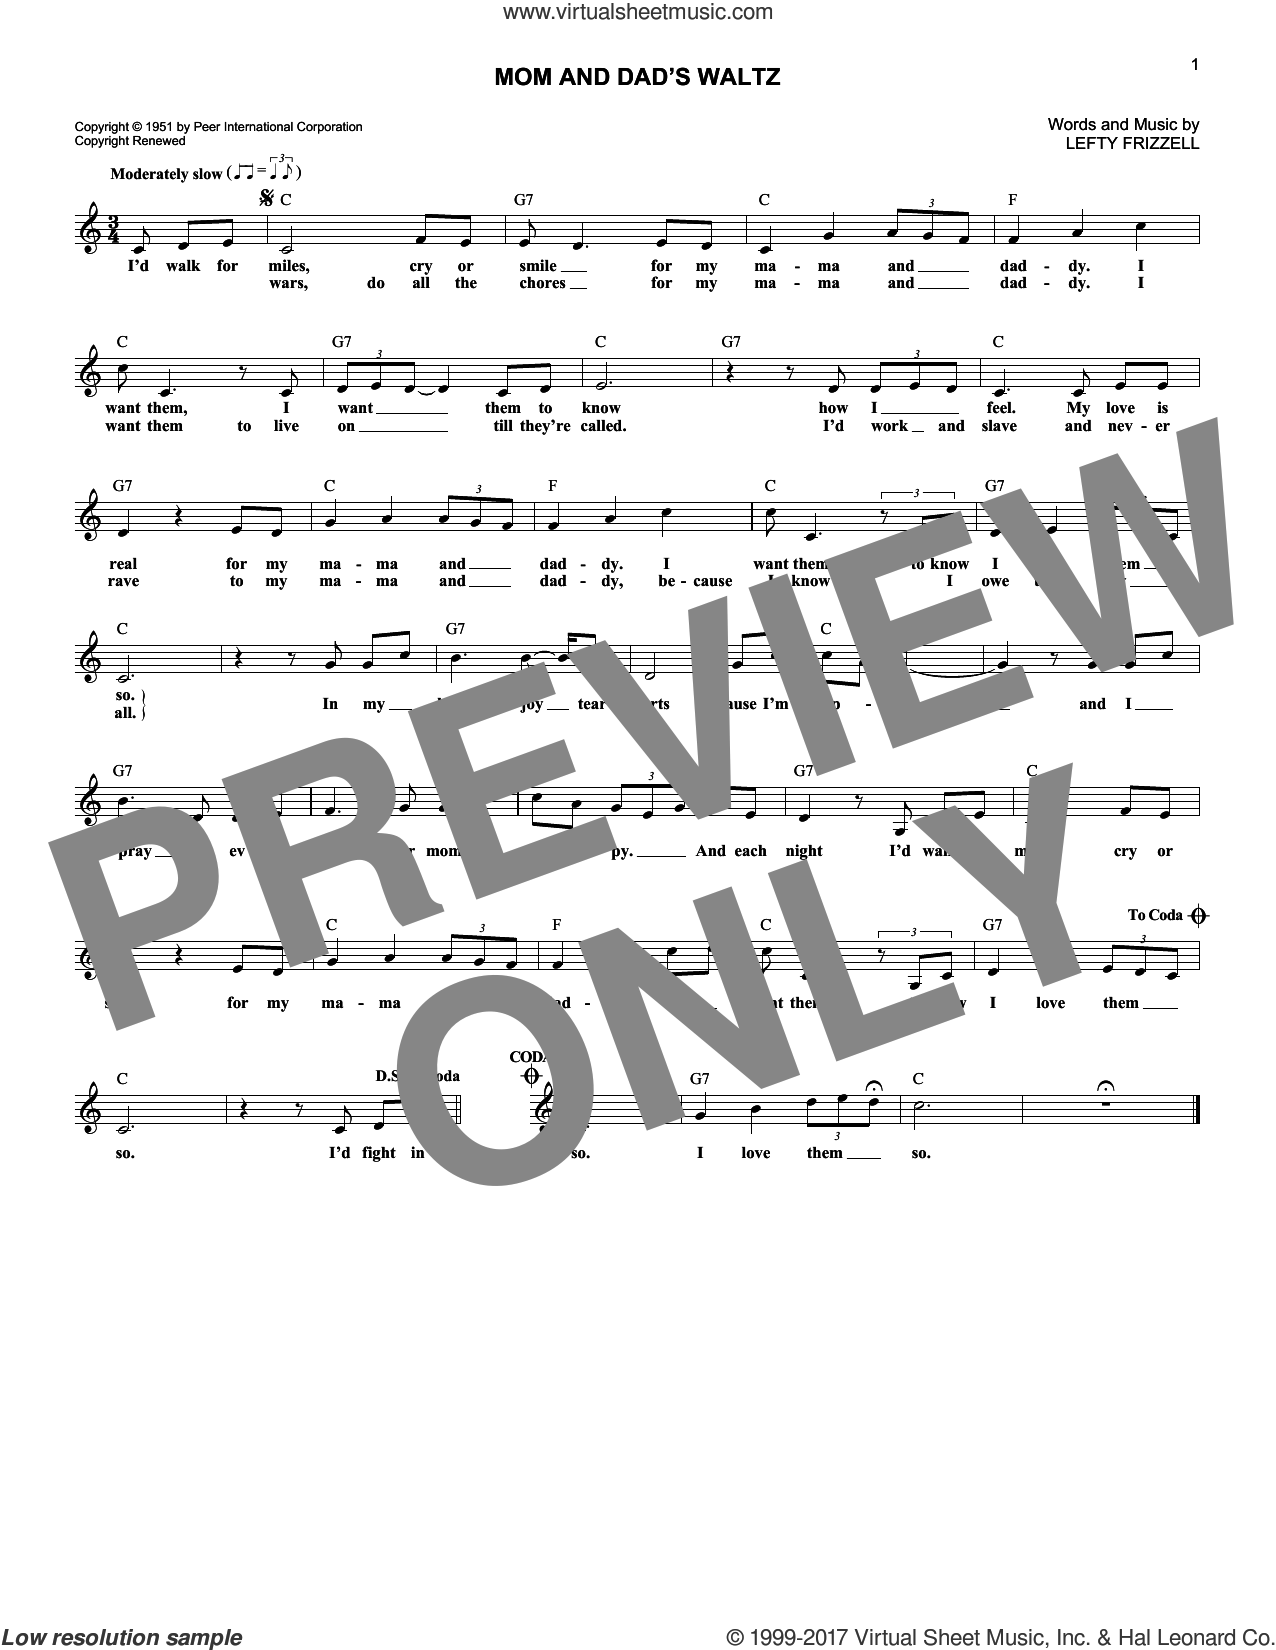 Mom And Dad's Waltz sheet music for voice and other instruments (fake book) by Lefty Frizzell, intermediate skill level